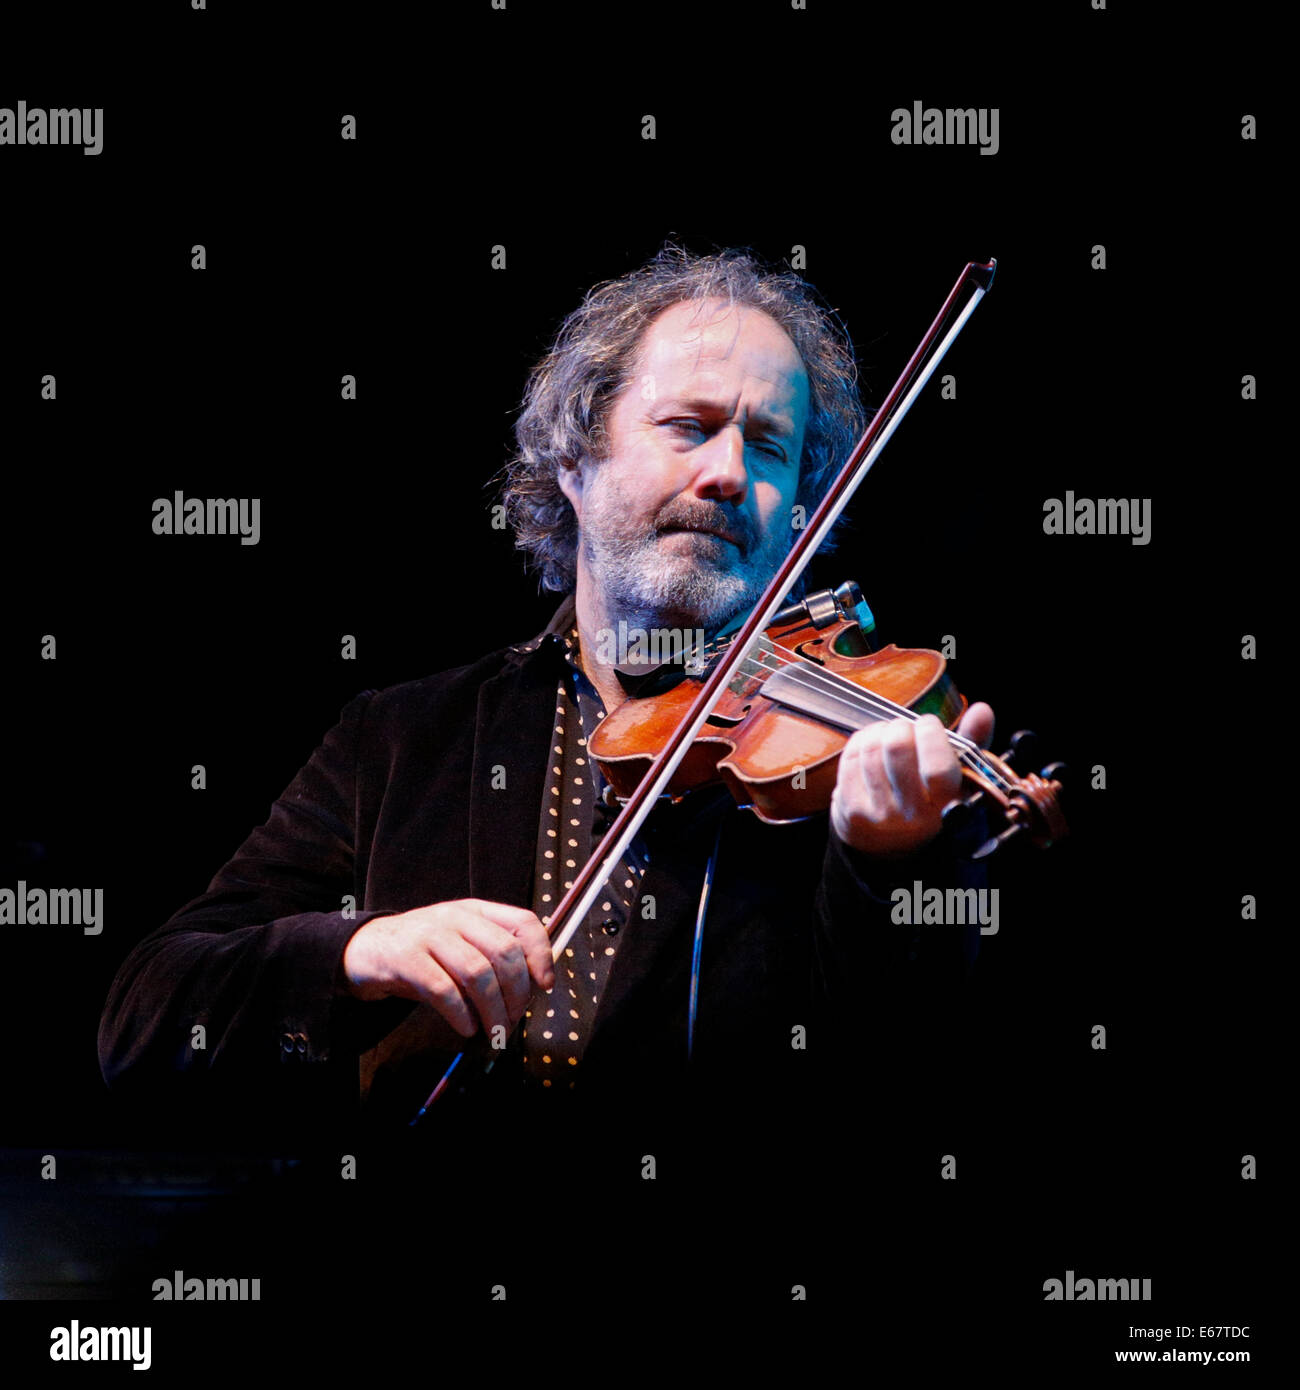 Steve Wickham of The Wayerboys playing a fiddle on stage at Fairport's Cropredy Convention 2014 - Stock Image